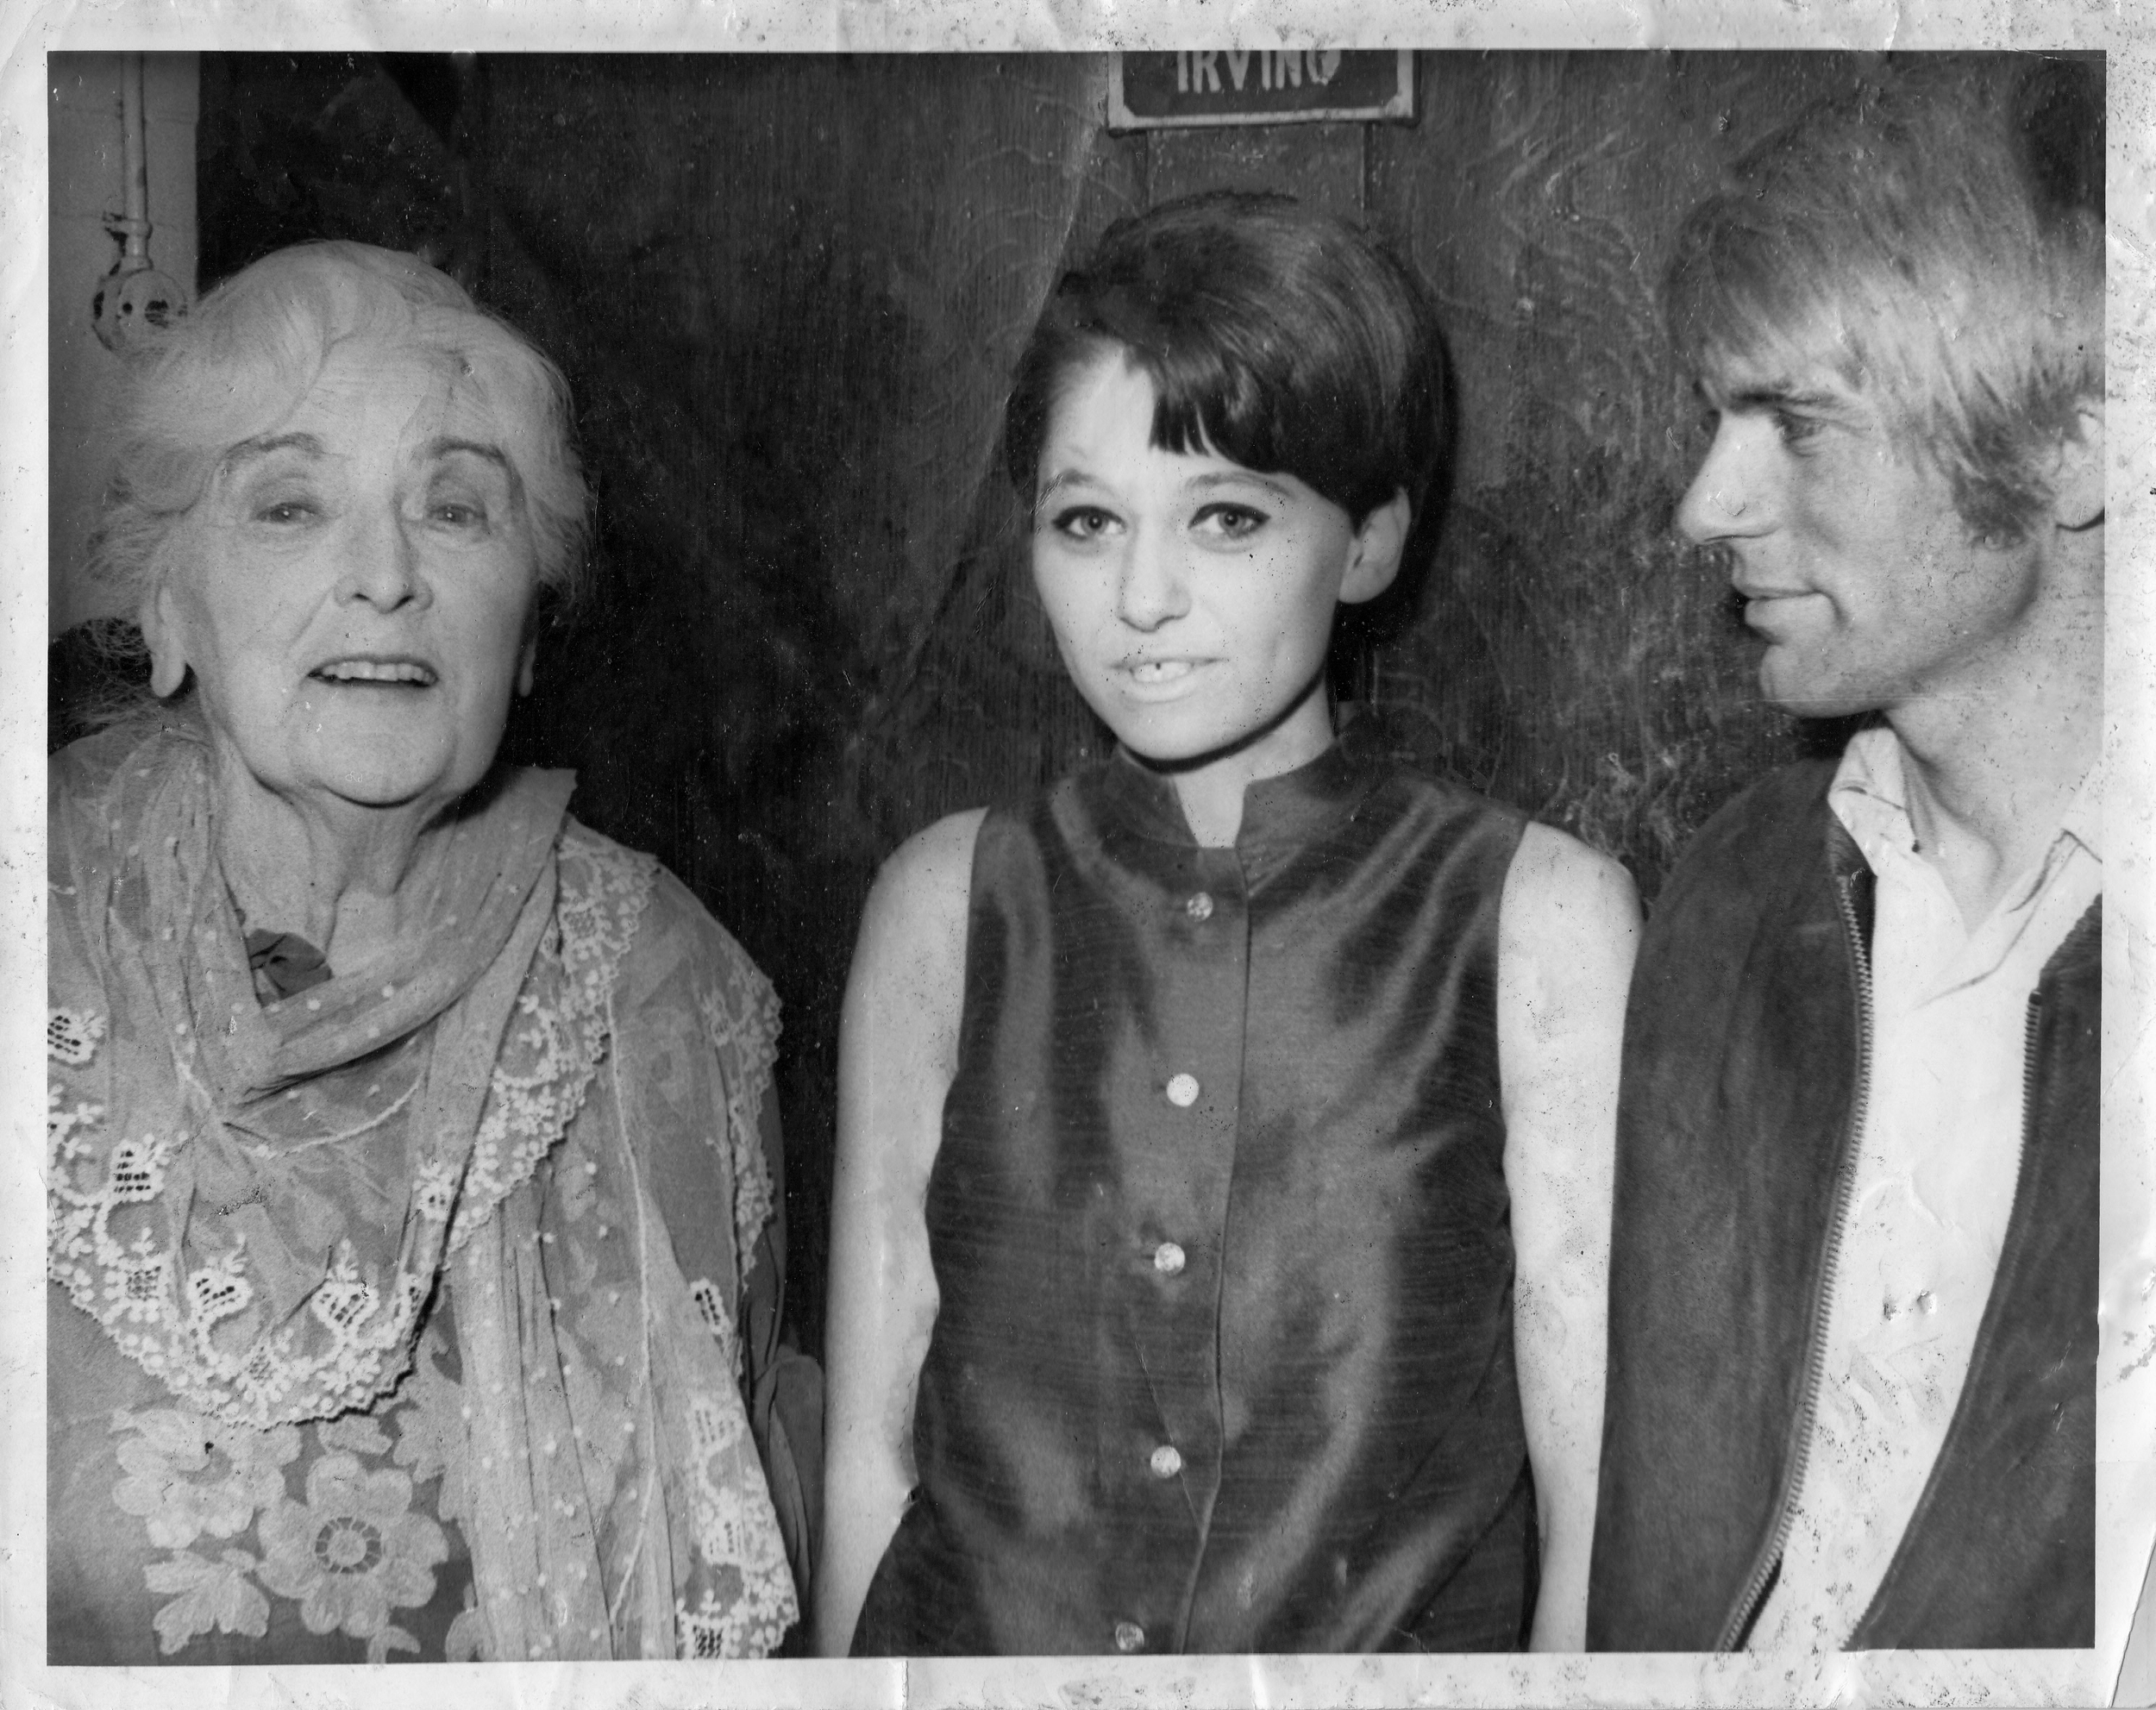 Me between two people I greatly admired - Dame Sybil Thorndike and Adam Faith - both of whom I was totally in awe of.